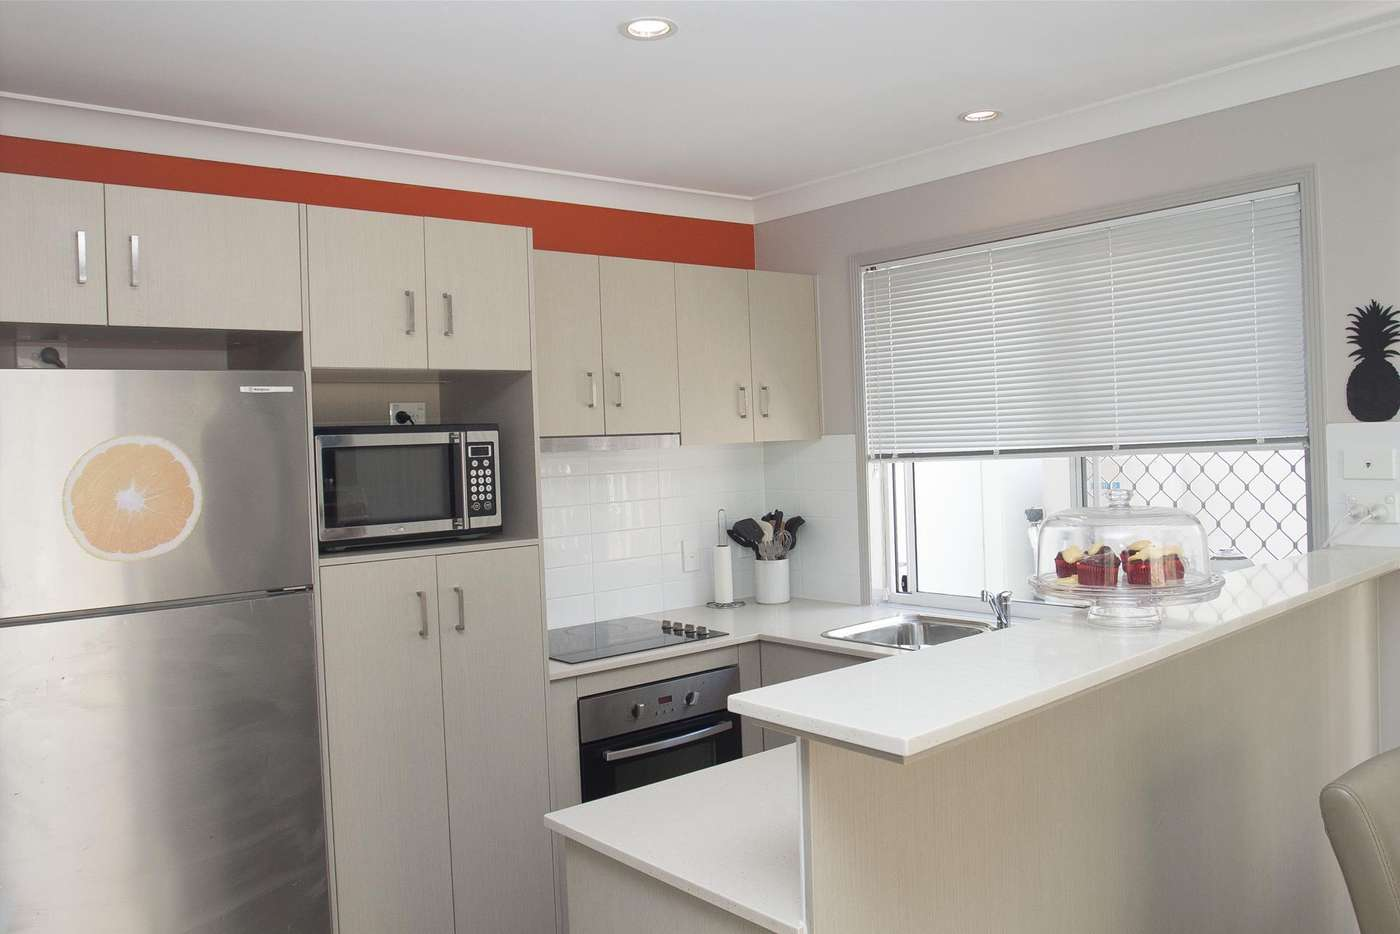 Fifth view of Homely house listing, 25/19 Gumtree Crescent, Upper Coomera QLD 4209